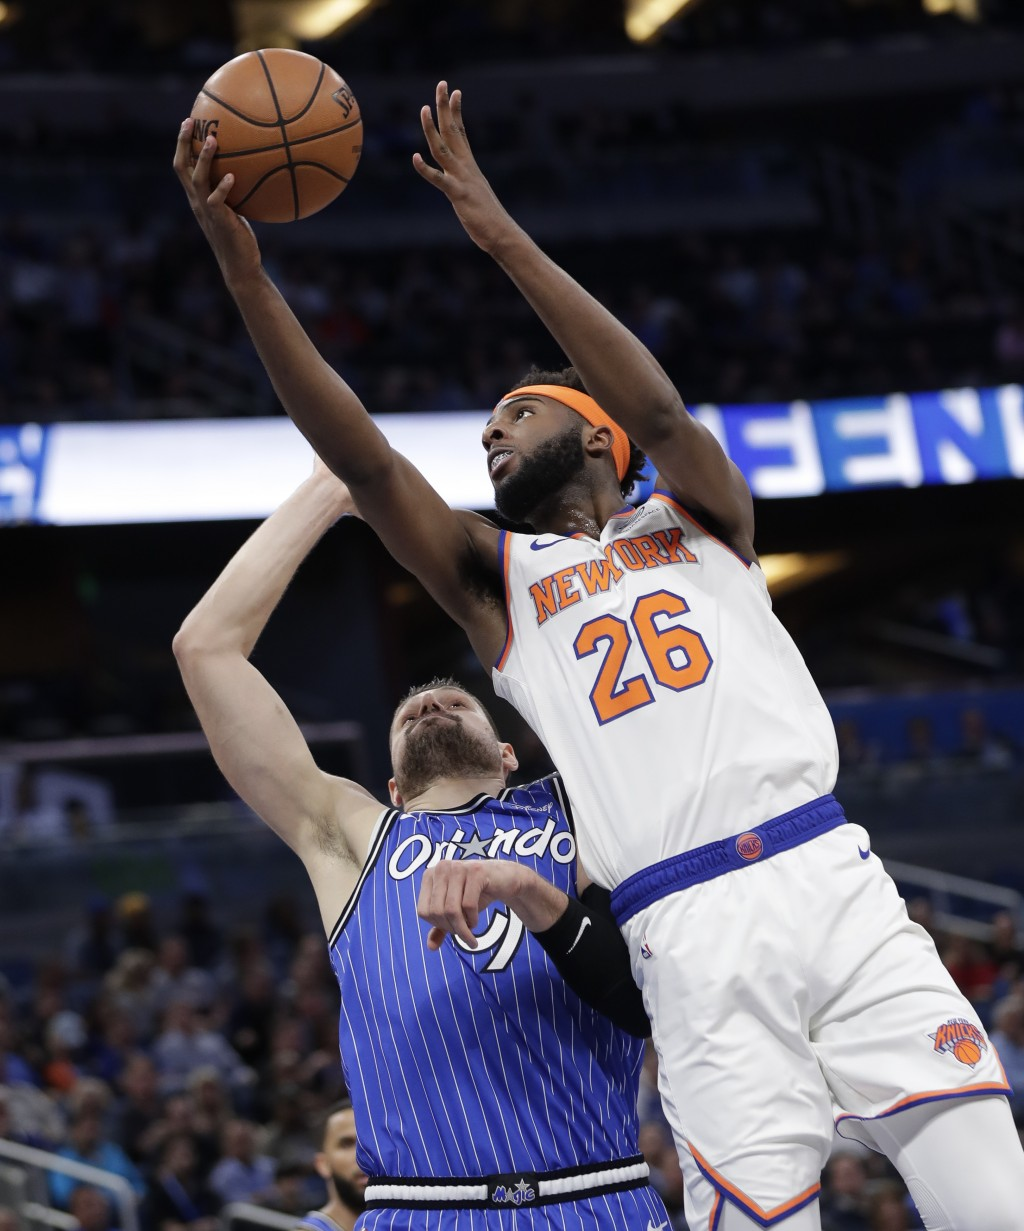 New York Knicks' Mitchell Robinson (26) makes a shot over Orlando Magic's Nikola Vucevic during the first half of an NBA basketball game Wednesday, Ap...